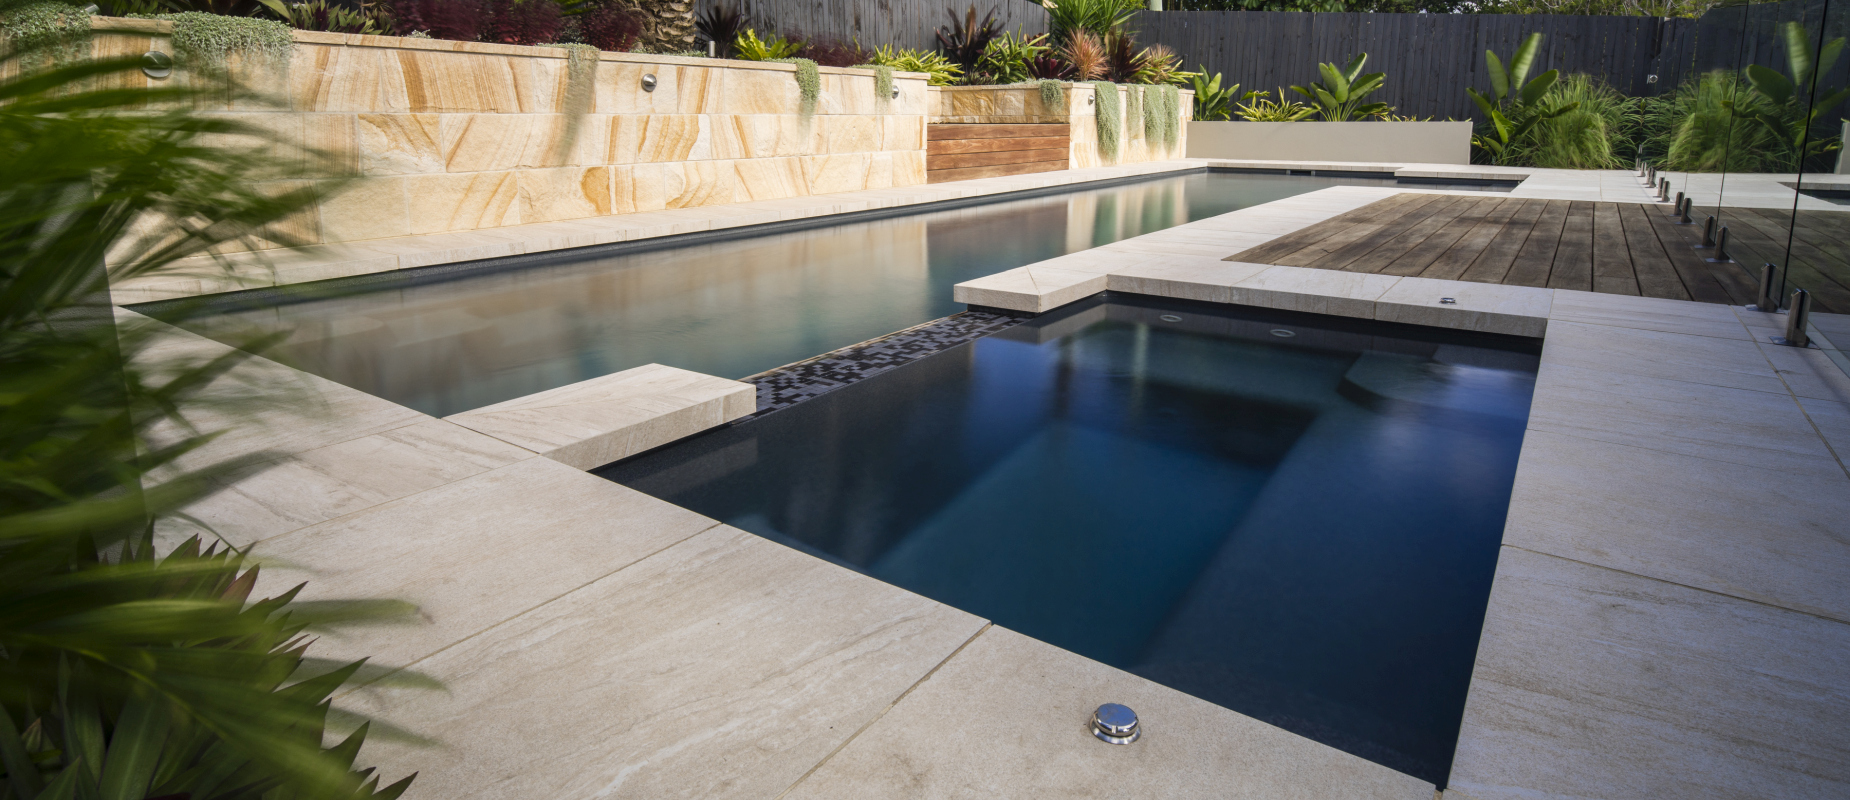 Luxurious Pool with Spa in Australia - Inground or Above Ground